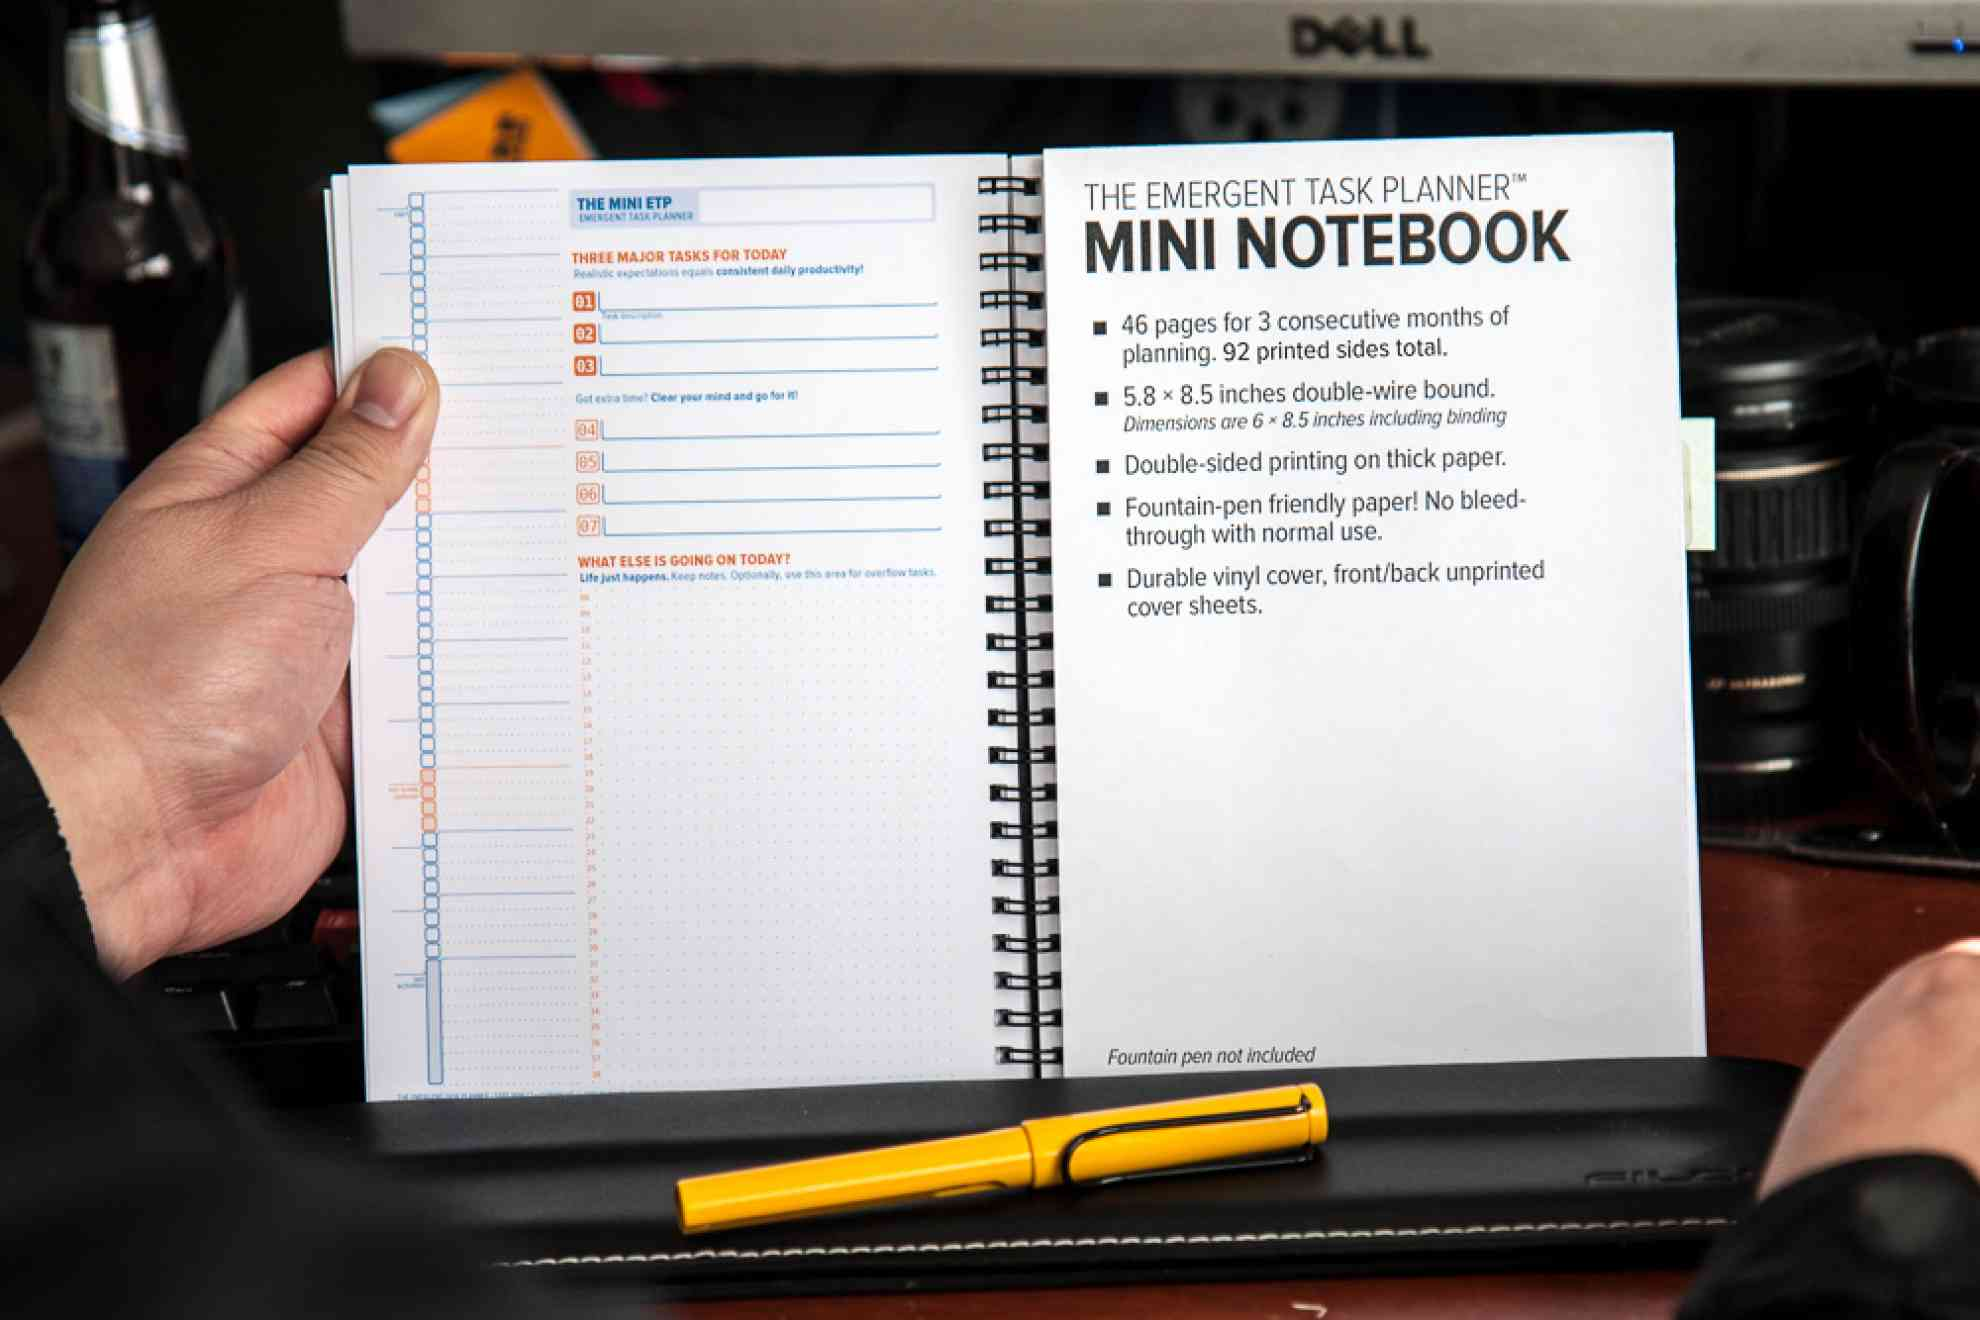 The Emergent Task Planner Notebook